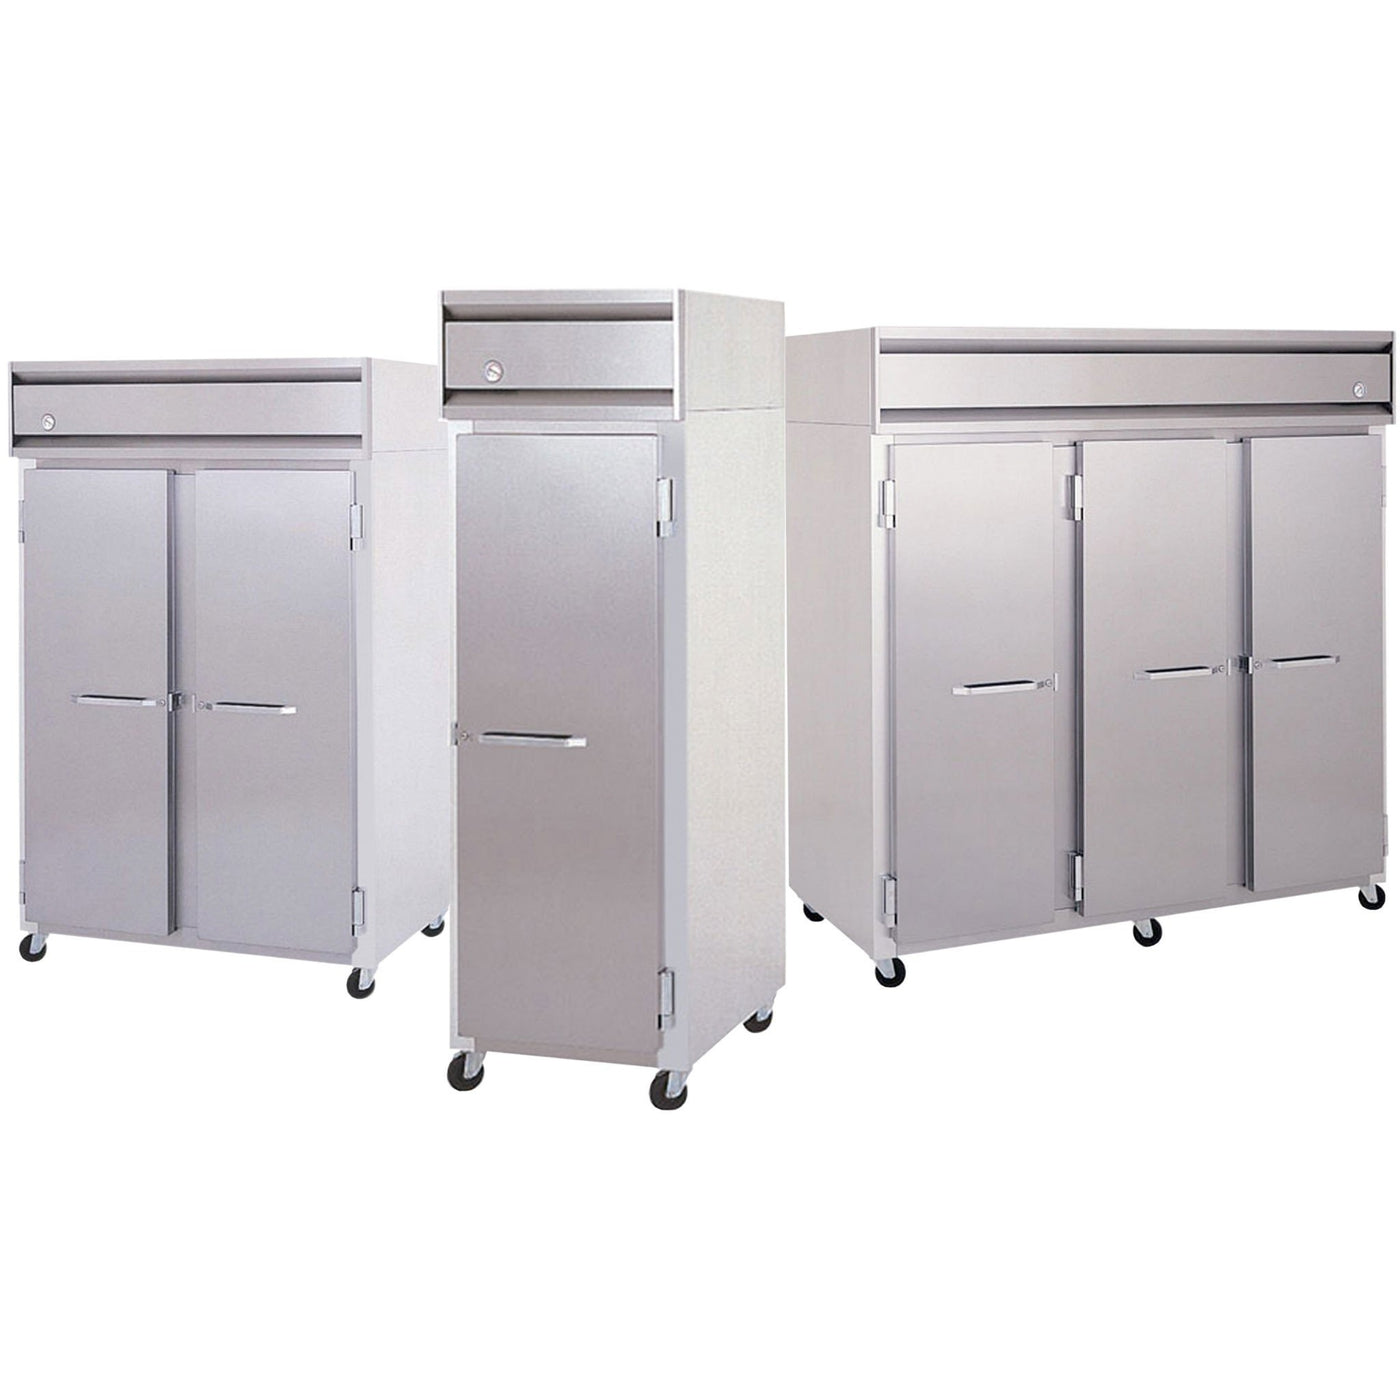 Reach-in Freezers-Laboratory Accessory-Mortech Manufacturing Company Inc. Quality Stainless Steel Autopsy, Morgue, Funeral Home, Necropsy, Veterinary / Anatomy, Dissection Equipment and Accessories